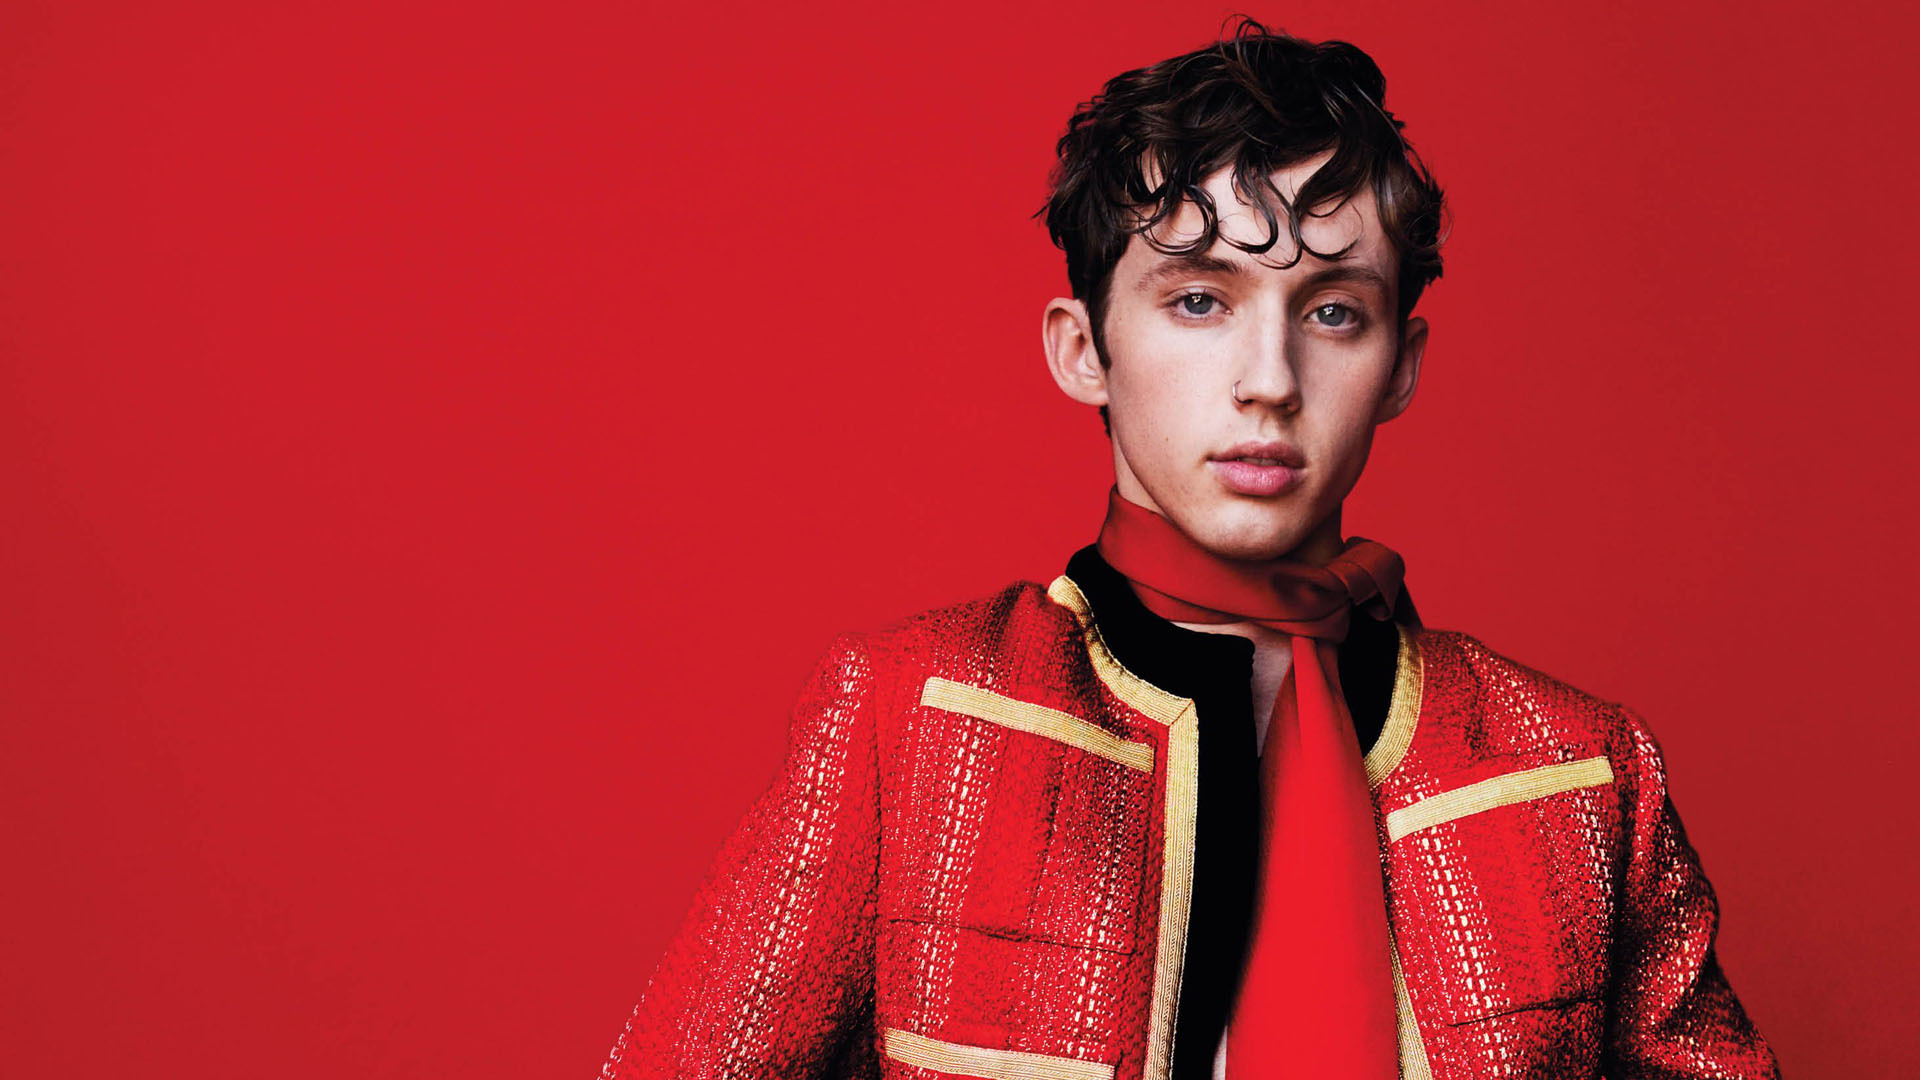 troye sivan wallpapers images photos pictures backgrounds